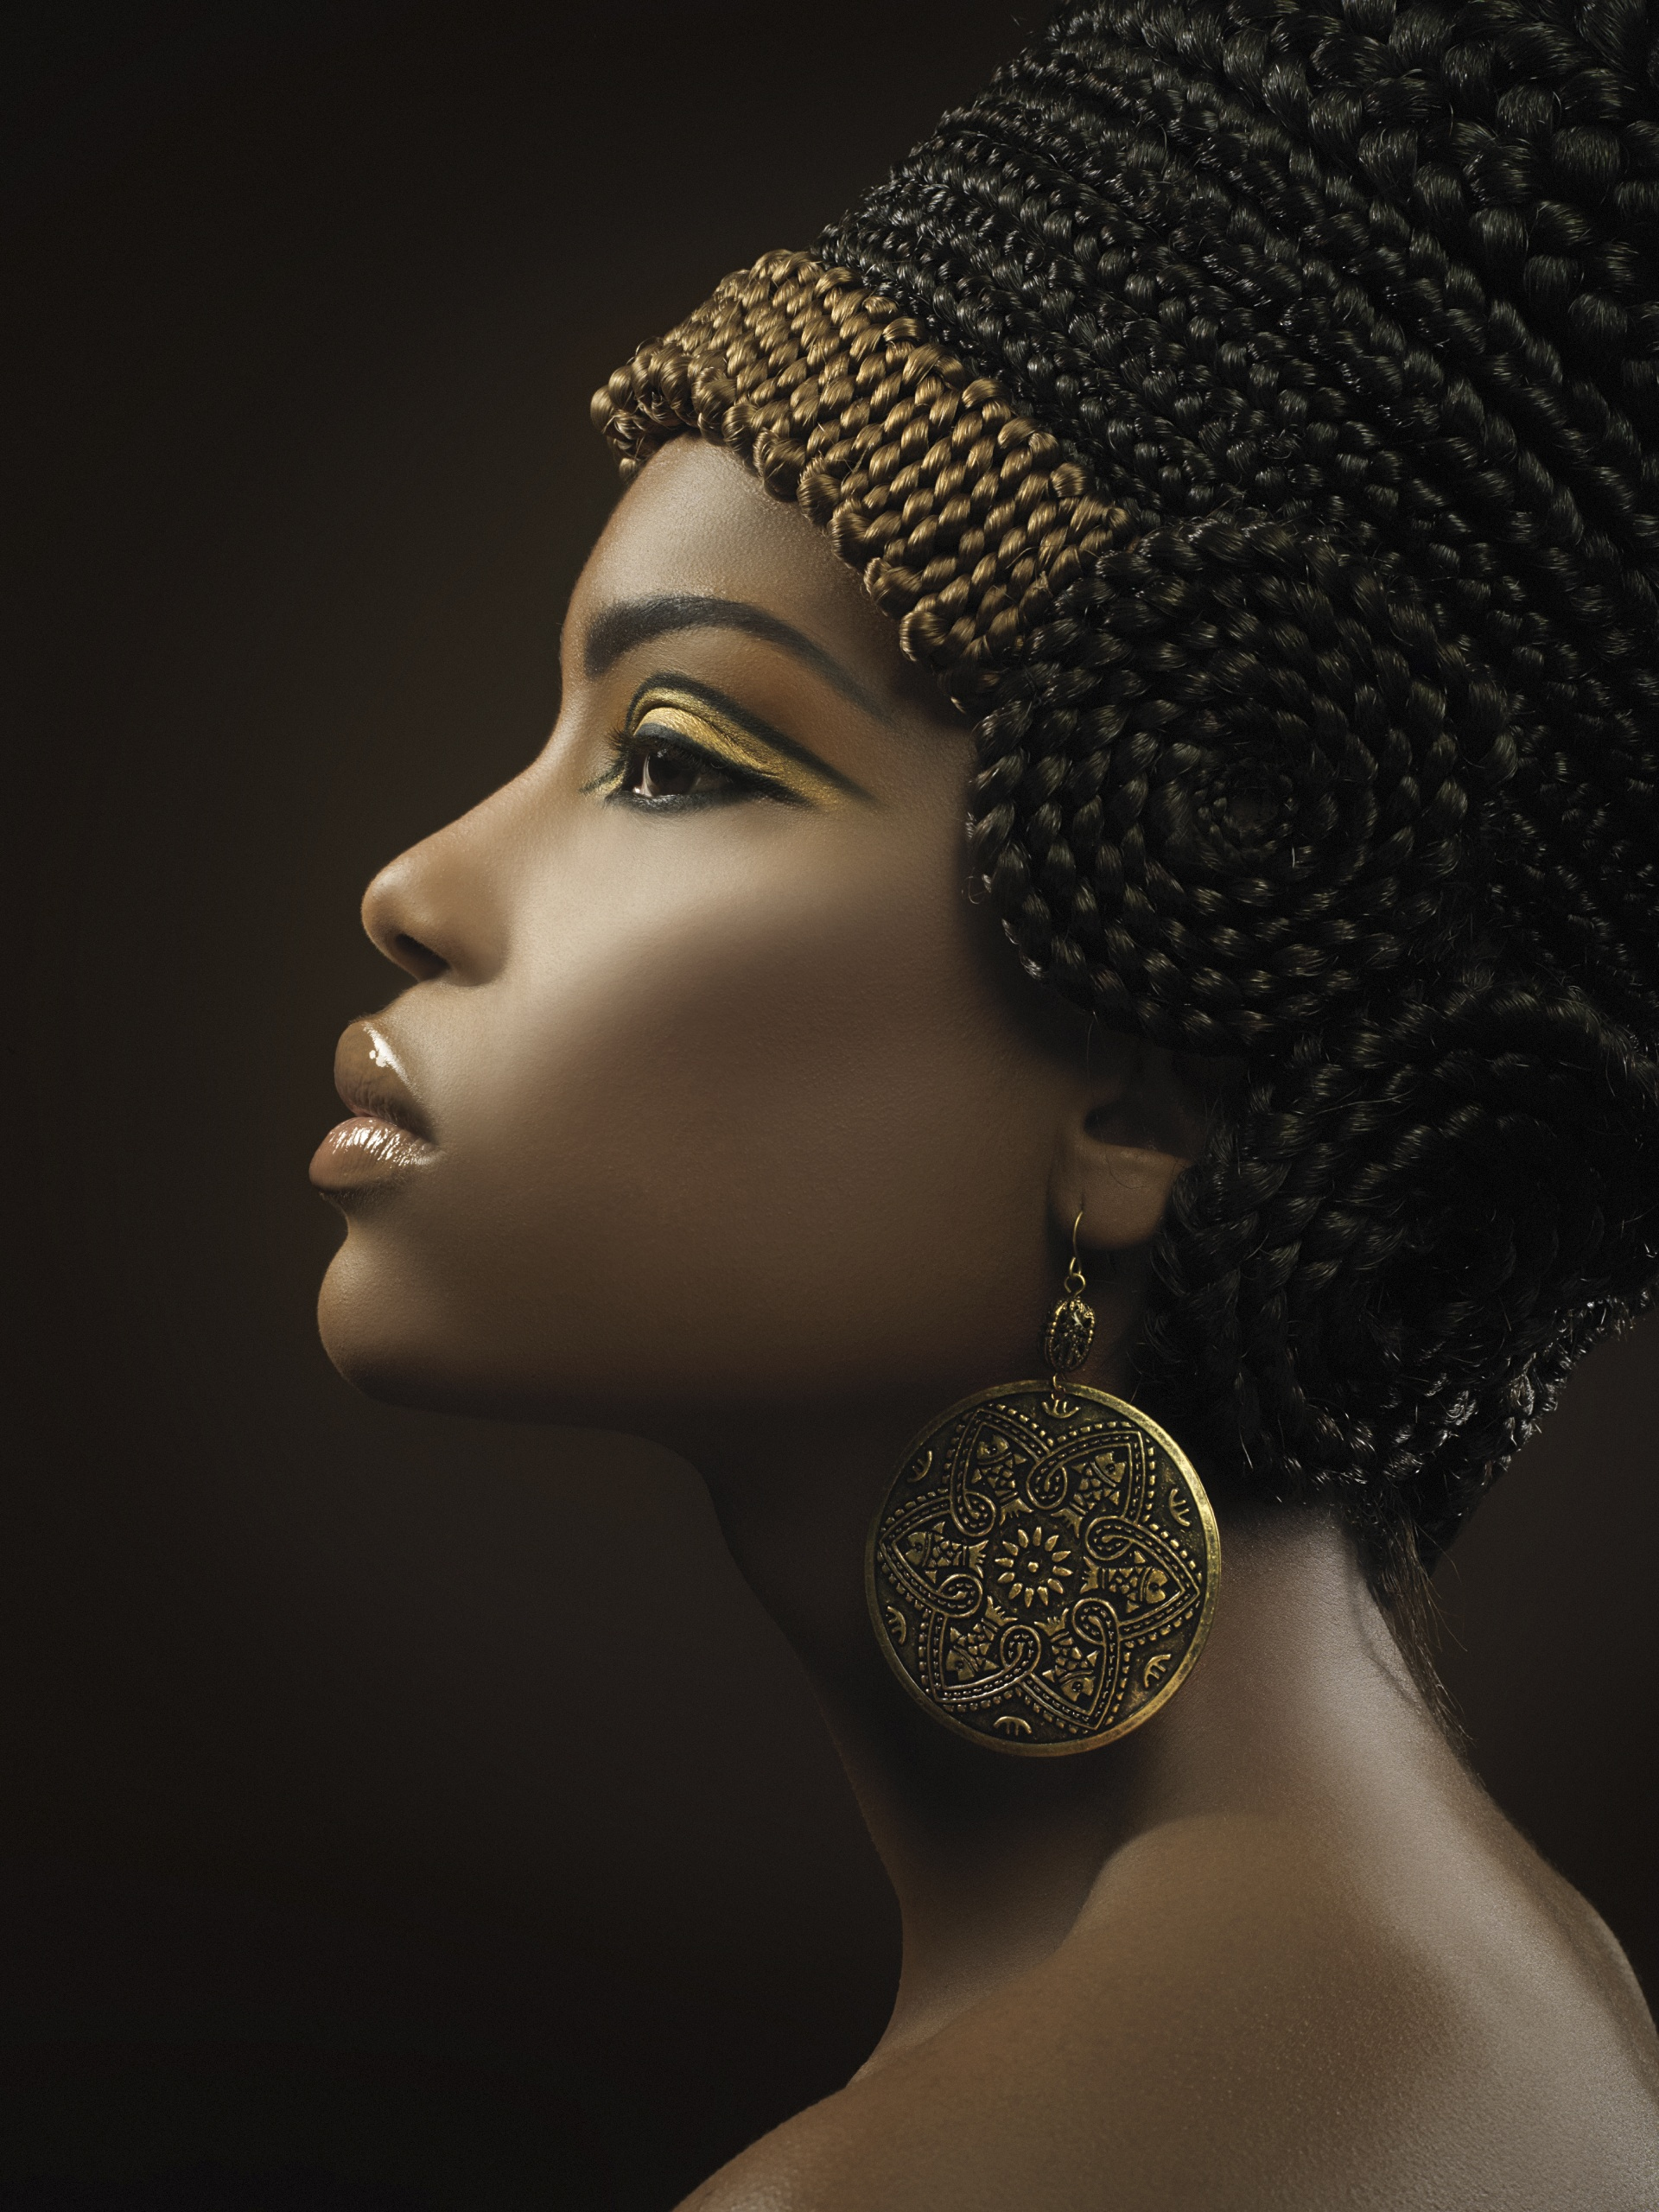 egyptian models tumblr - photo #37